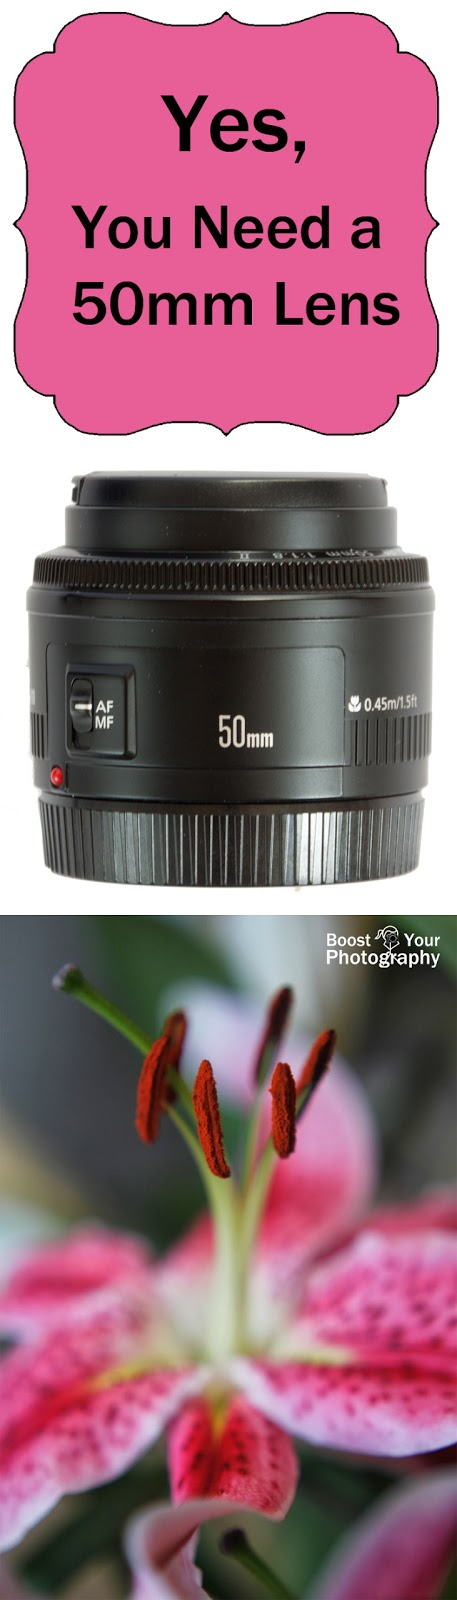 Yes, You Need a 50mm Lens | Boost Your Photography